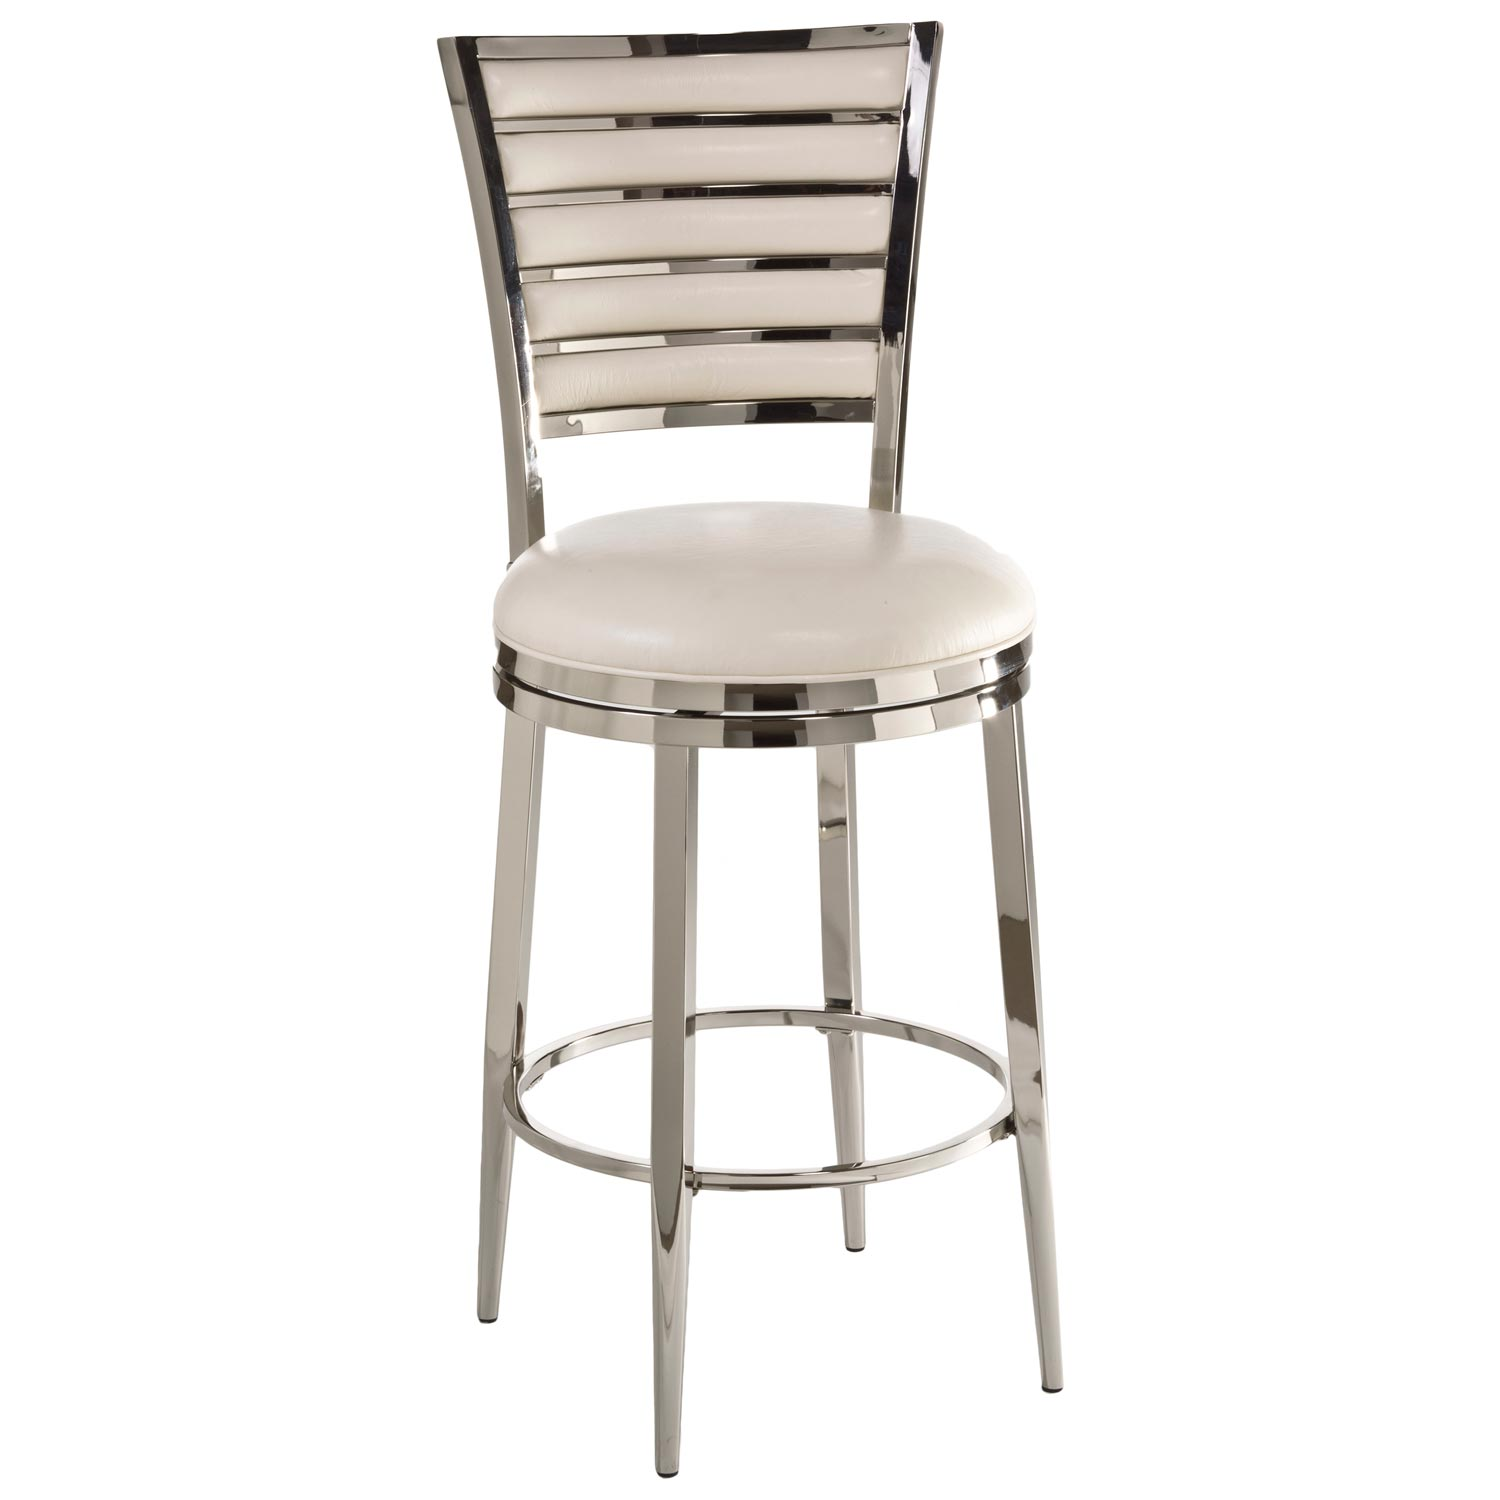 Rouen 26quot Swivel Counter Stool Polished Nickel Finish  : 5319 827 from www.dcgstores.com size 1500 x 1500 jpeg 89kB